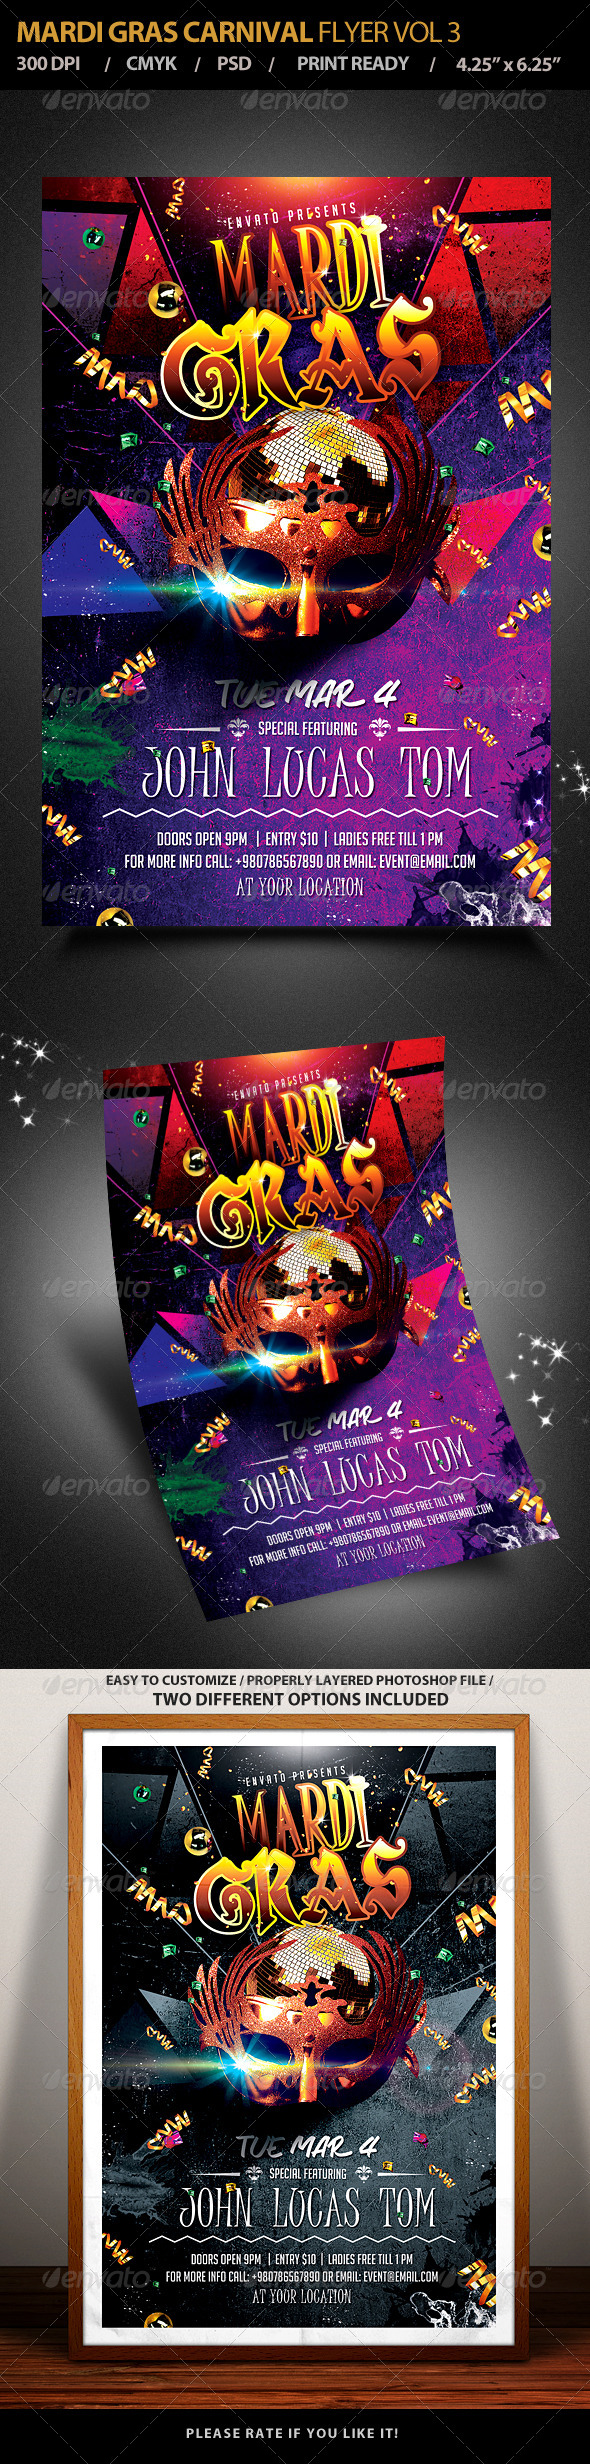 Mardi Gras Carnival Party Flyer Vol 3 - Events Flyers